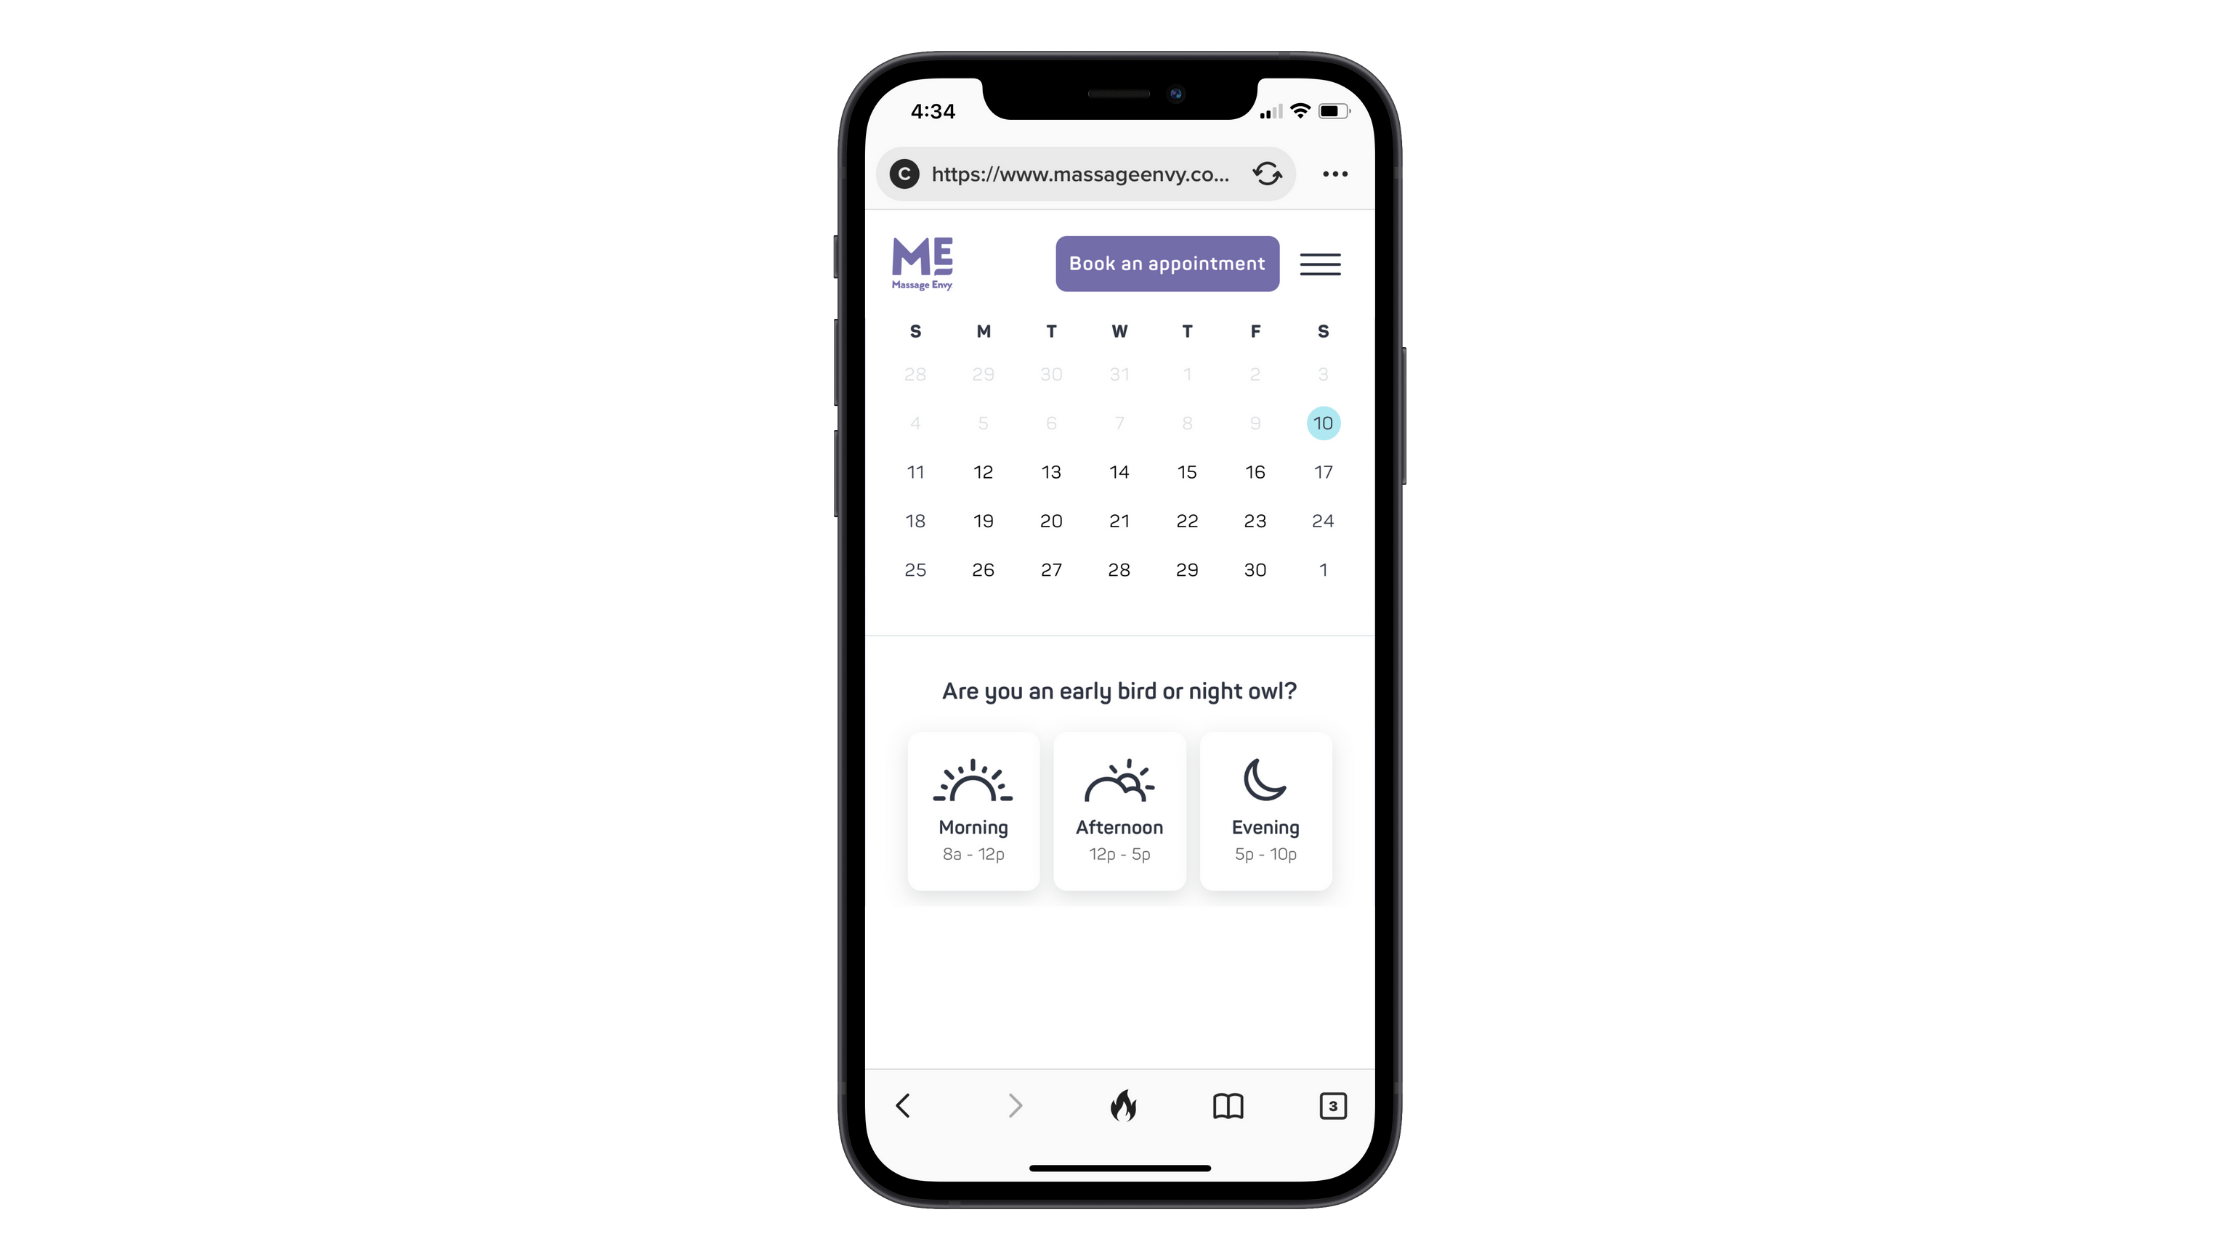 Massage Envy customers can find available days and times using the calendar booking system. An option to narrow down results by Morning 8a - 12p, Afternoon 12p - 5p, or Evening 5p - 10p is also available.